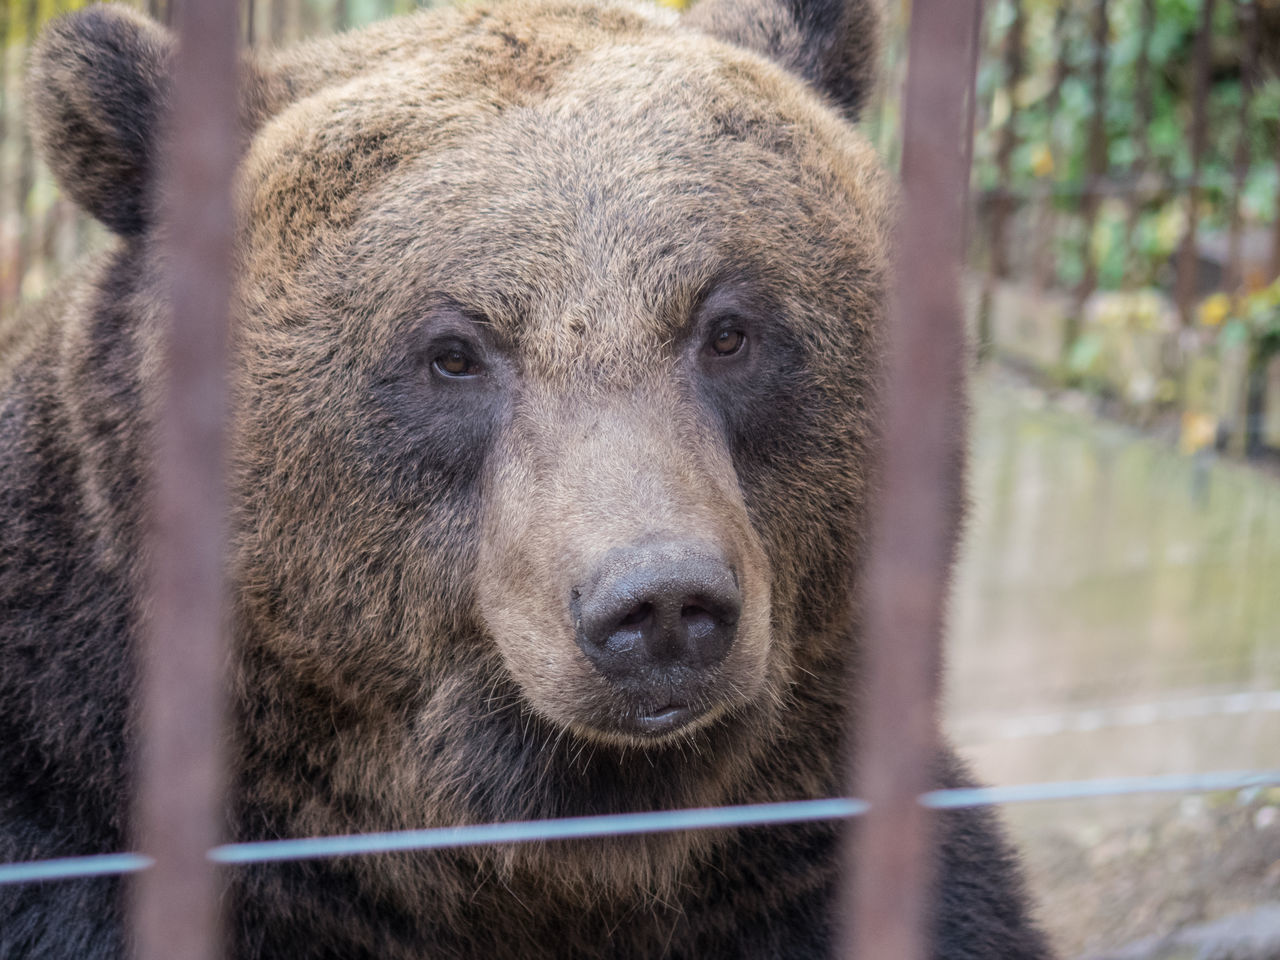 bear, one animal, animal themes, animal wildlife, mammal, animals in the wild, grizzly bear, day, no people, outdoors, nature, close-up, looking at camera, portrait